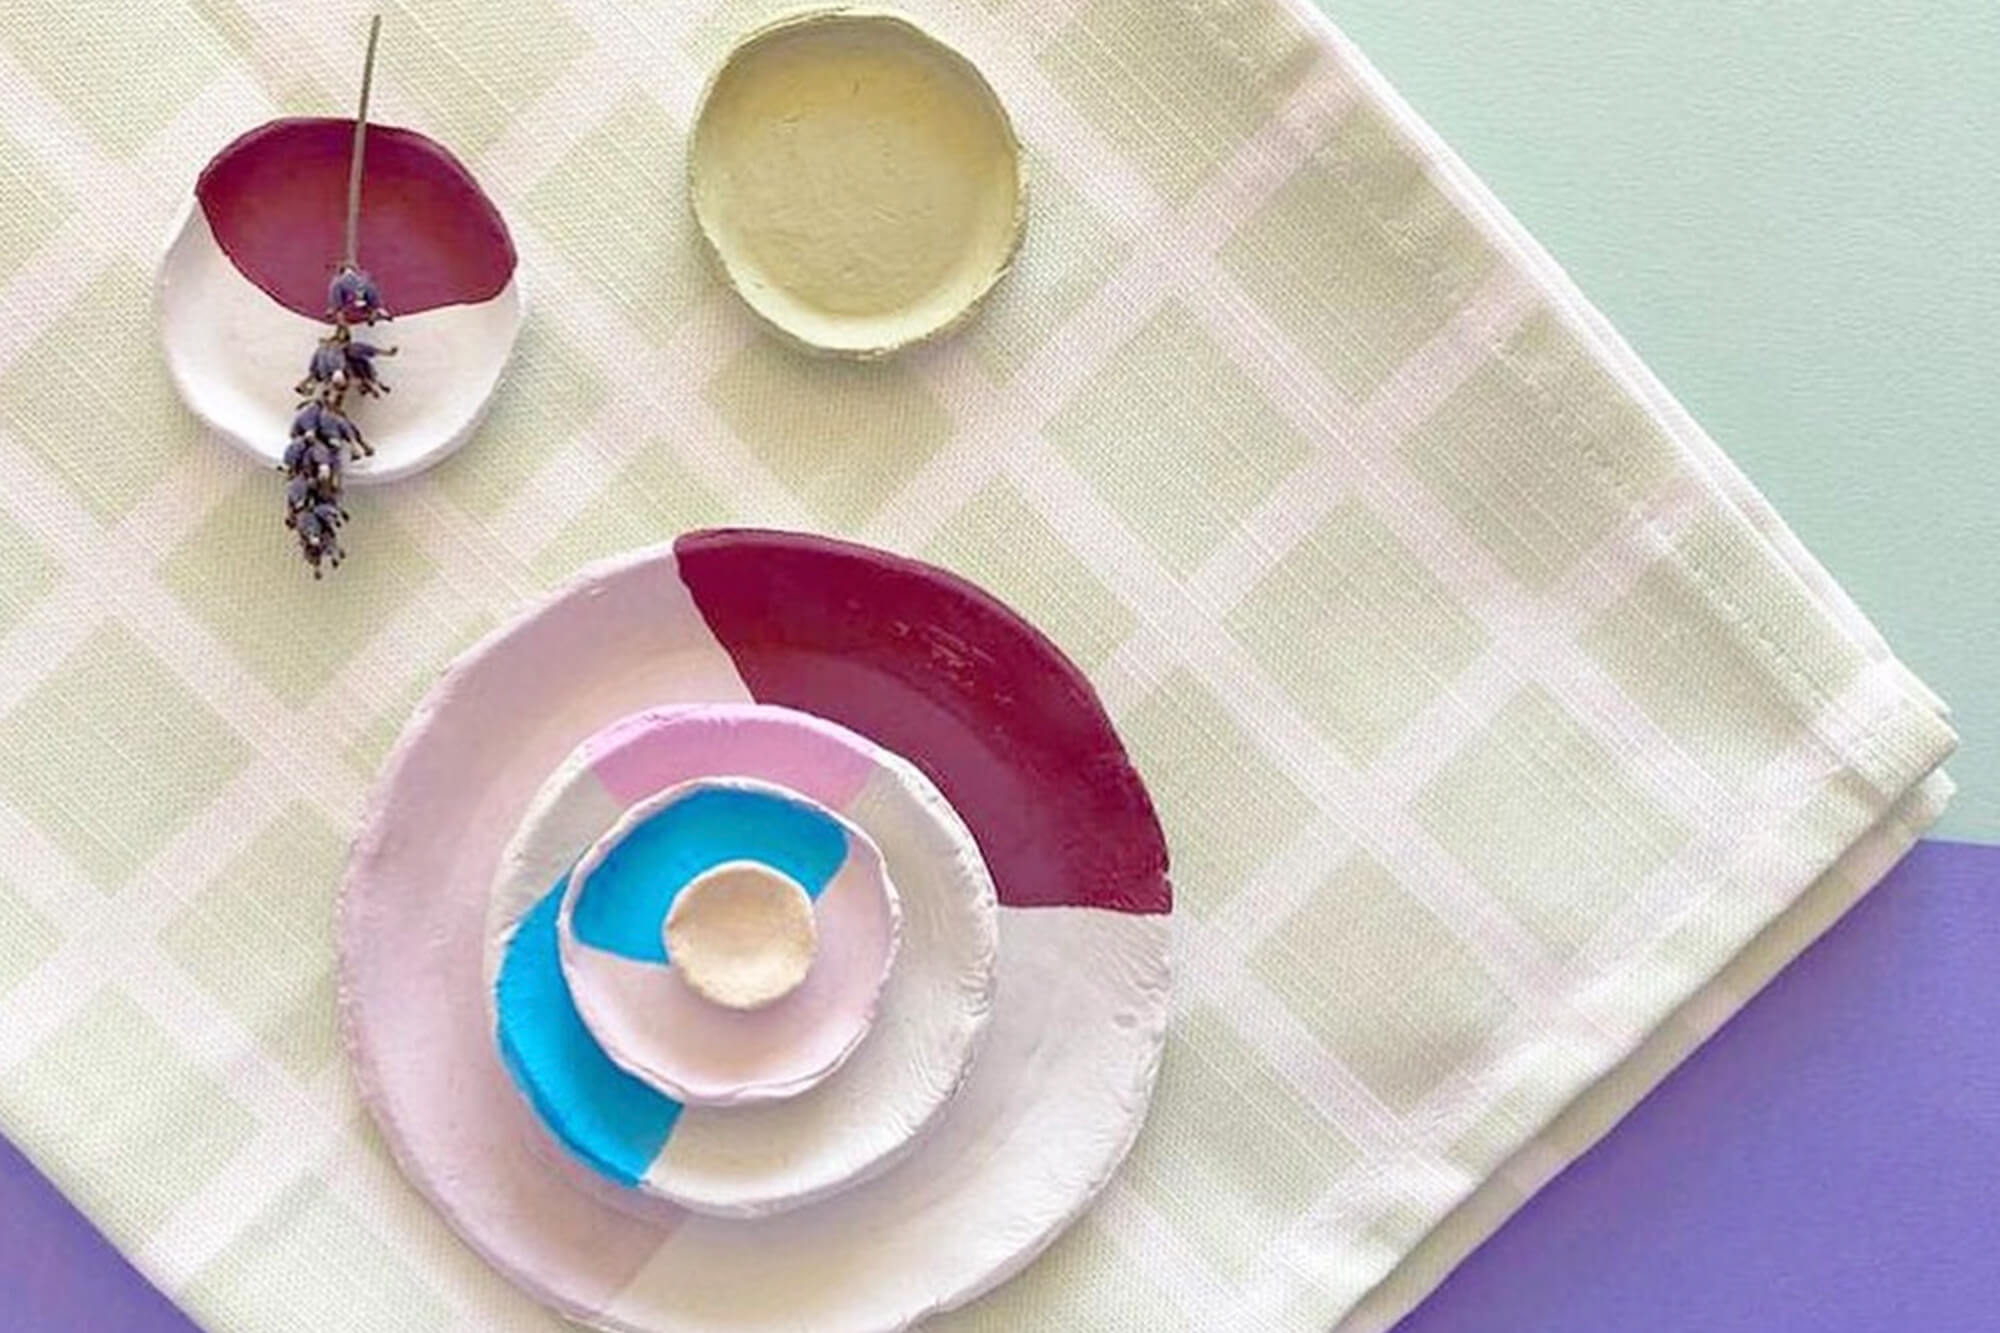 Colourful hand-painted bowls on a tablecloth